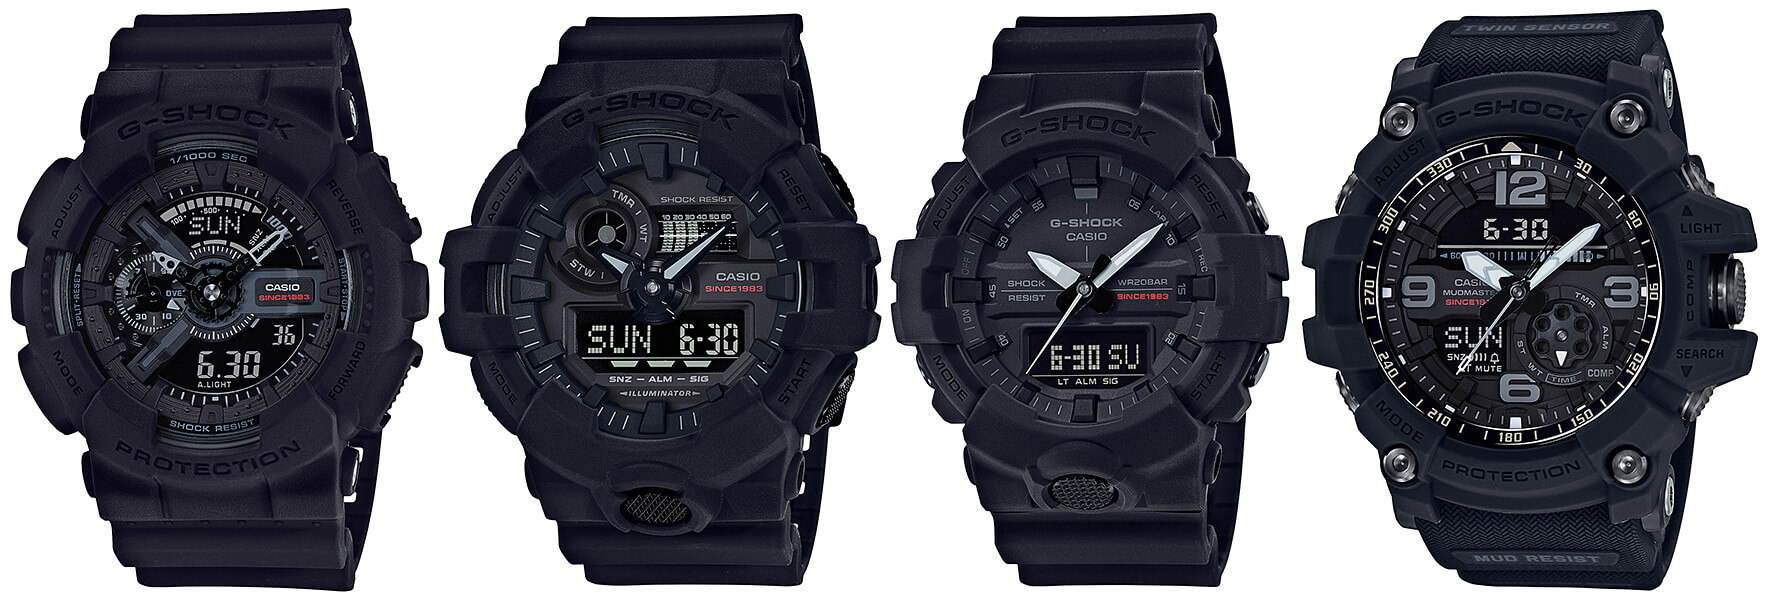 e9a4b6fb11eb G-Shock 35th Anniversary Big Bang Black Watch Collection – G-Central ...